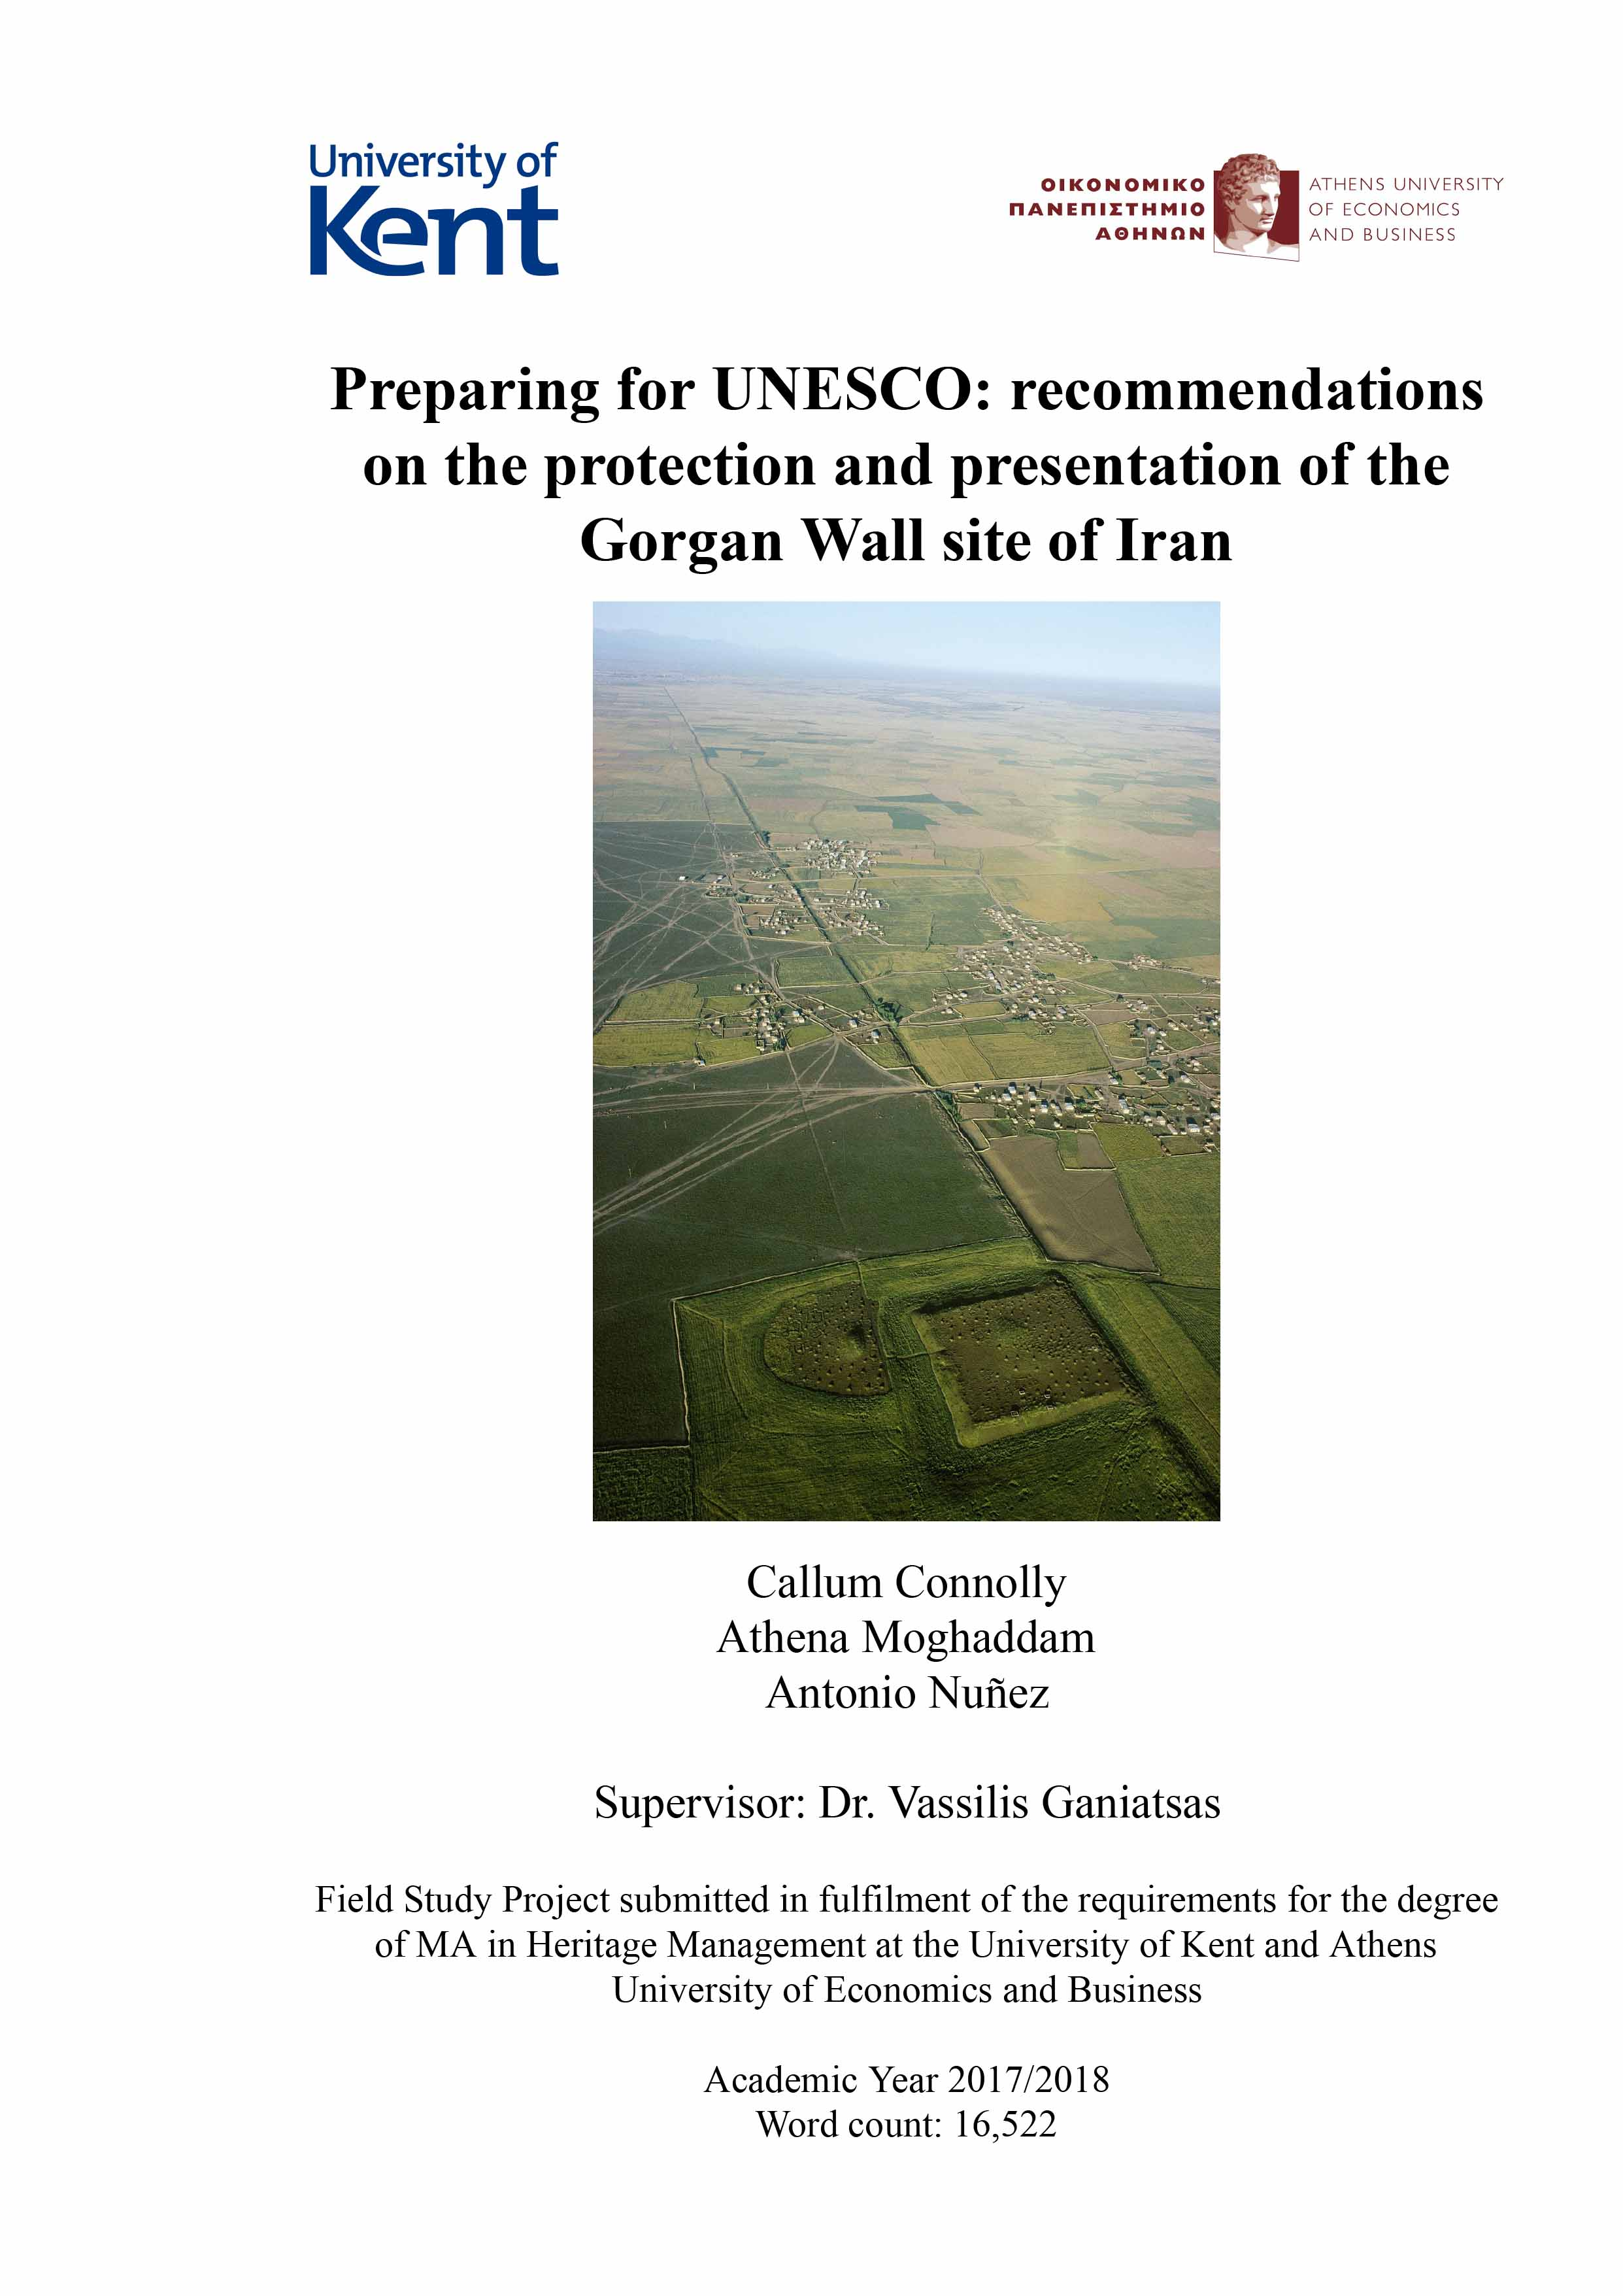 Prepare for UNESCO recommendations About protection and presentation Gorgan Iran wall site